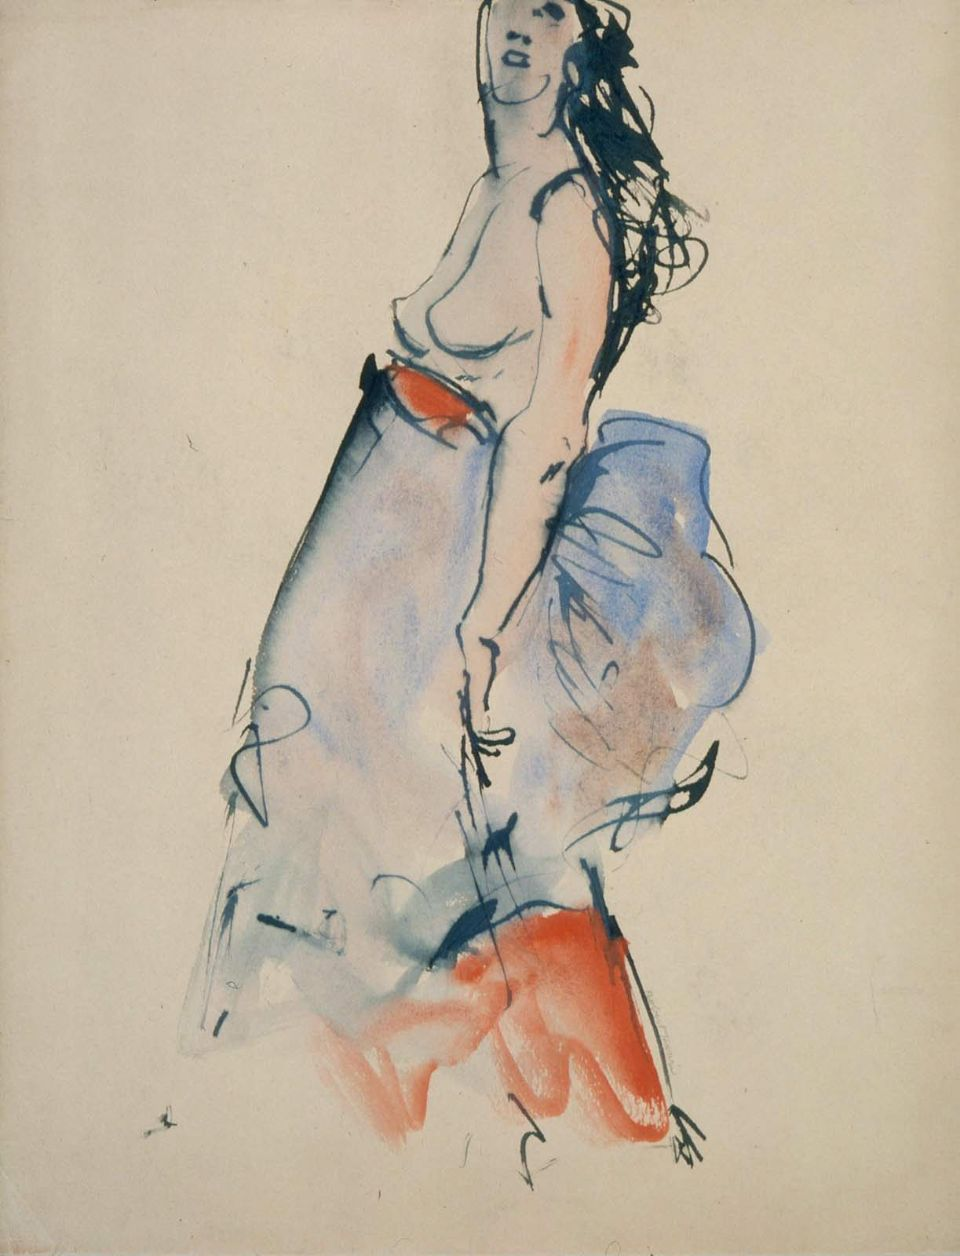 Nude+Model+with+Blue+and+Red+Skirt+watercolour+31.4+x+25.4+cm The 34 year old model, who is expecting a boy this month, posed nude for an ...